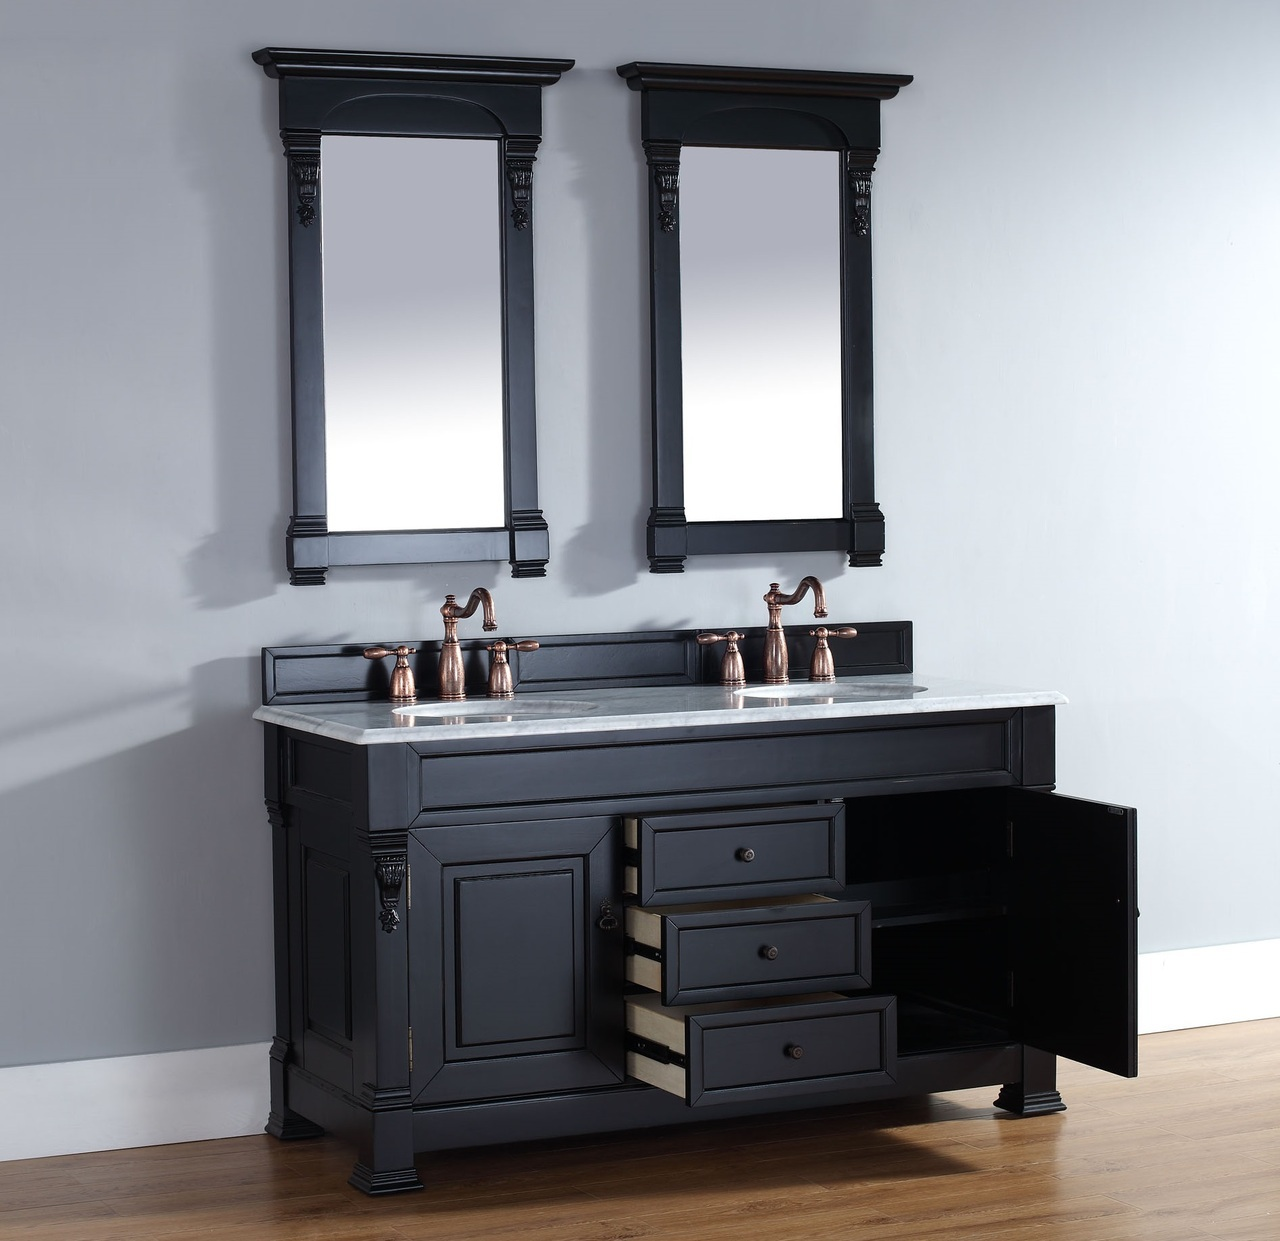 vanities sink under with architecture amazing double interior home top vanity design luxury inch good ideas contemporary bathroom